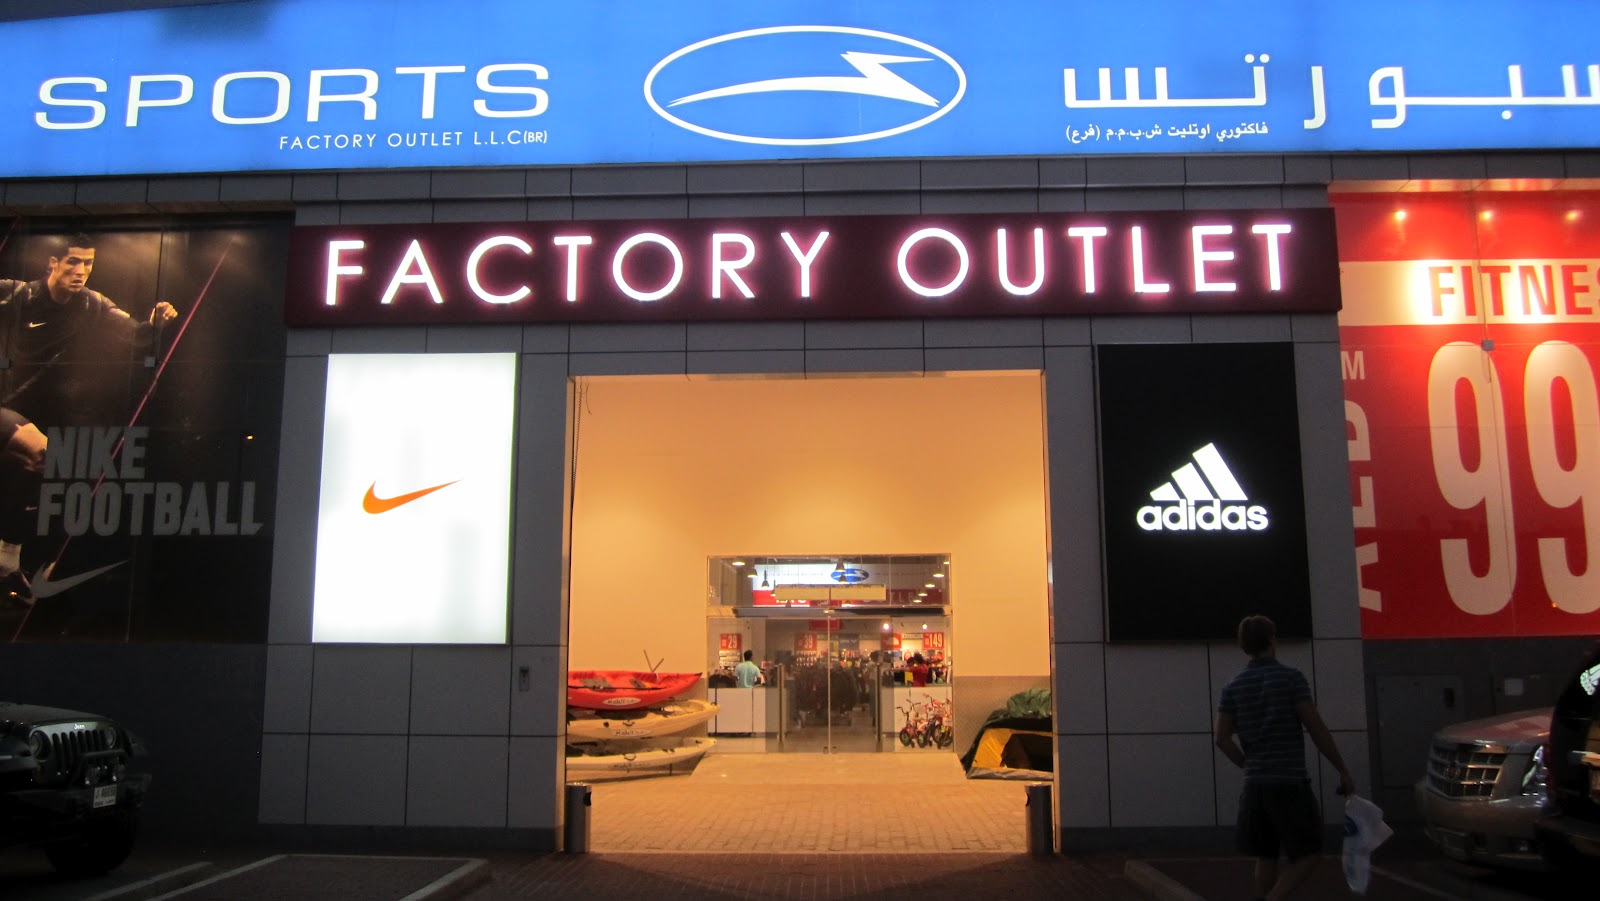 Nike Factory Store Outlet Locations Philippines Santillana Compartirsantillana Compartir